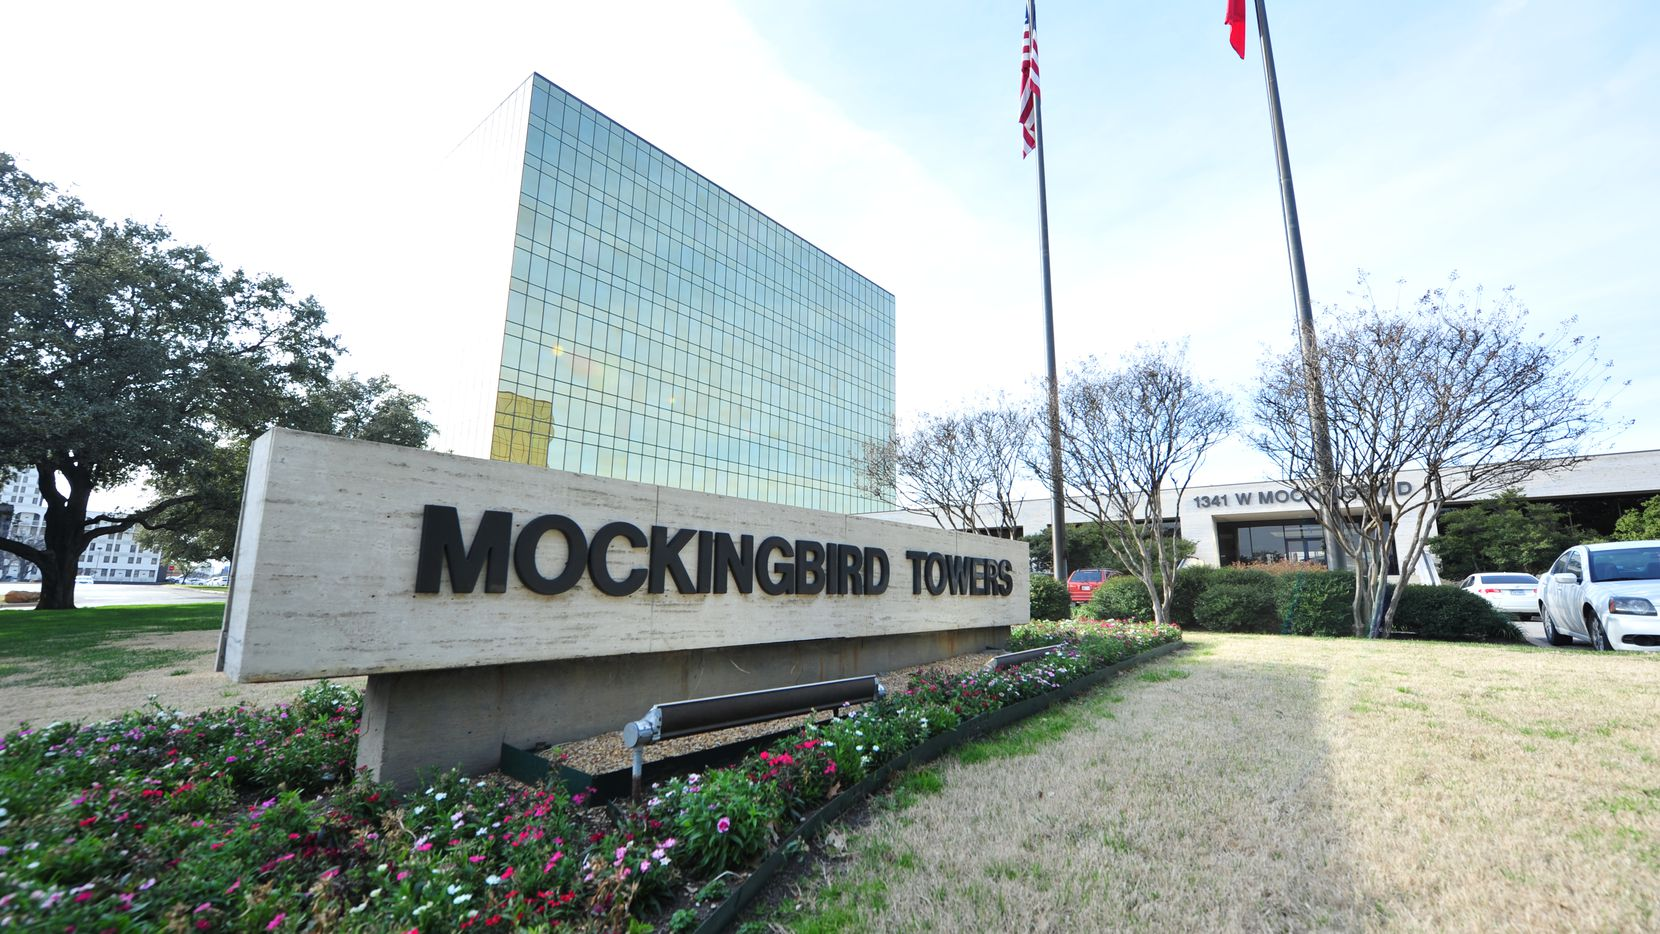 The 2-building Mockingbird Towers is between Stemmons Freeway and Love Field.